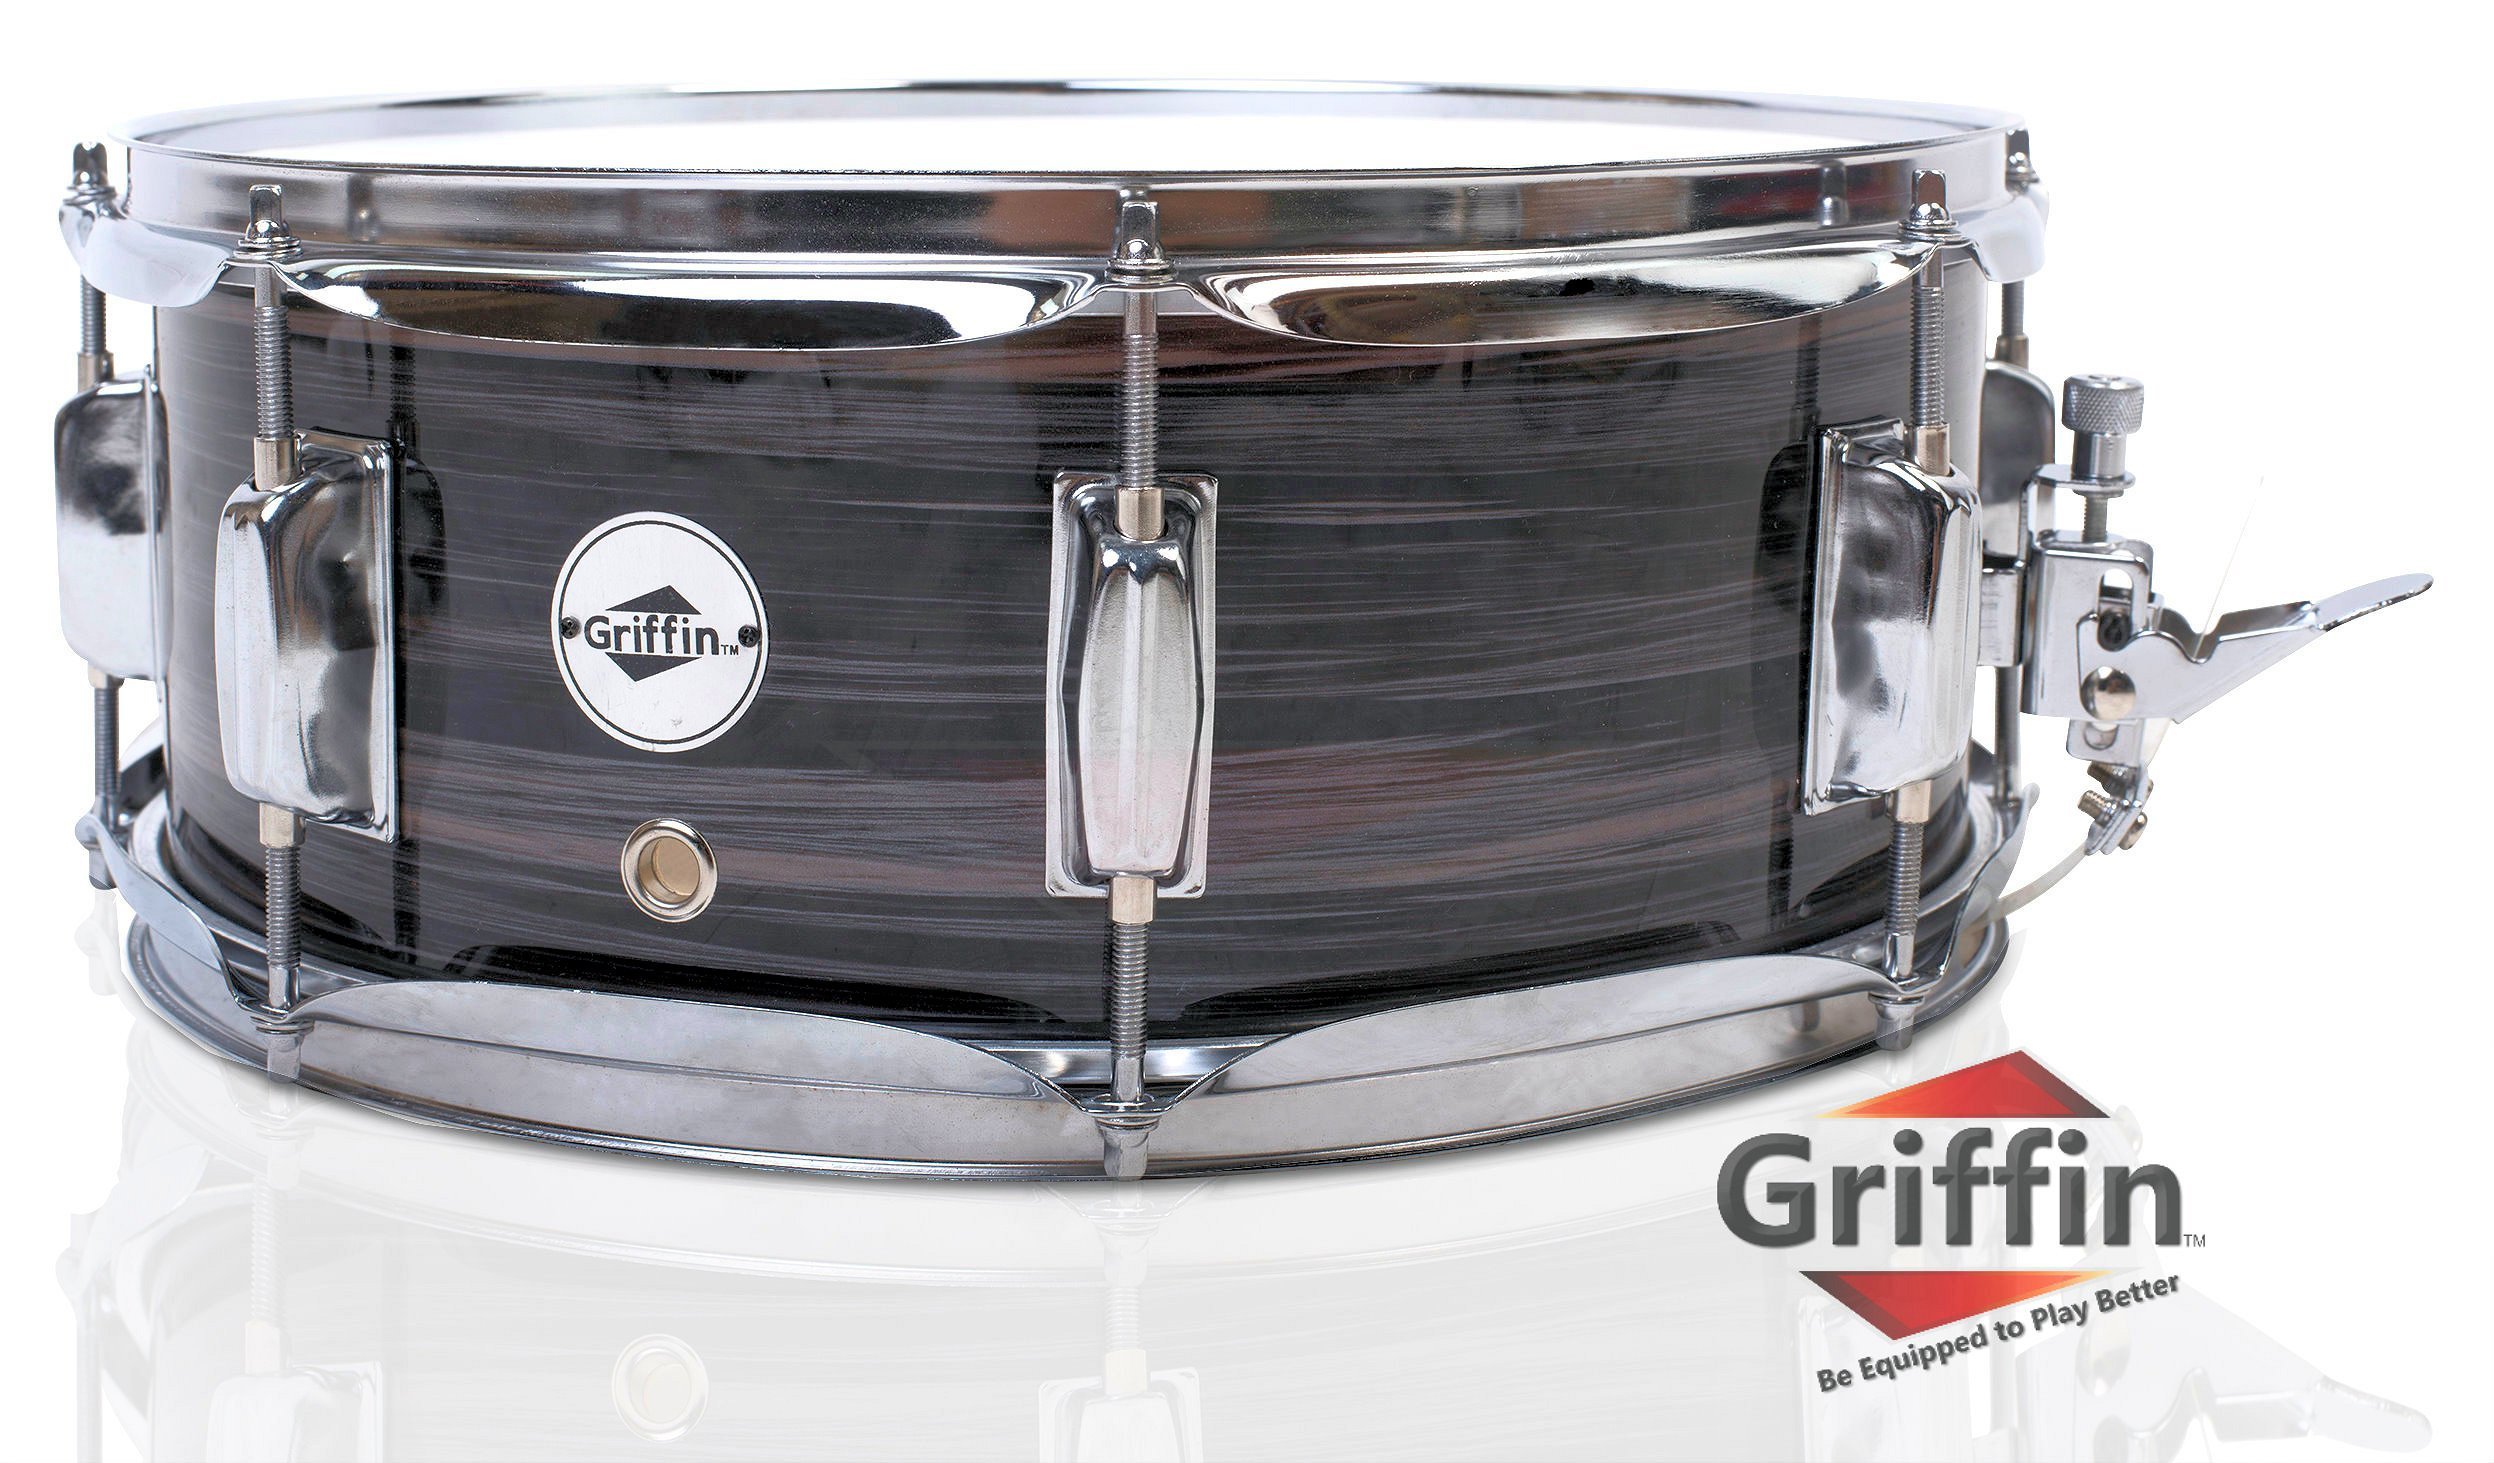 Deluxe Snare Drum by Griffin | 14'' x 5.5'' Poplar Wood Shell with Zebra PVC Glossy Finish | Percussion Musical Instrument with Drummers Key for Students & Professionals |8 Tuning Lugs & Snare Strainer by Griffin